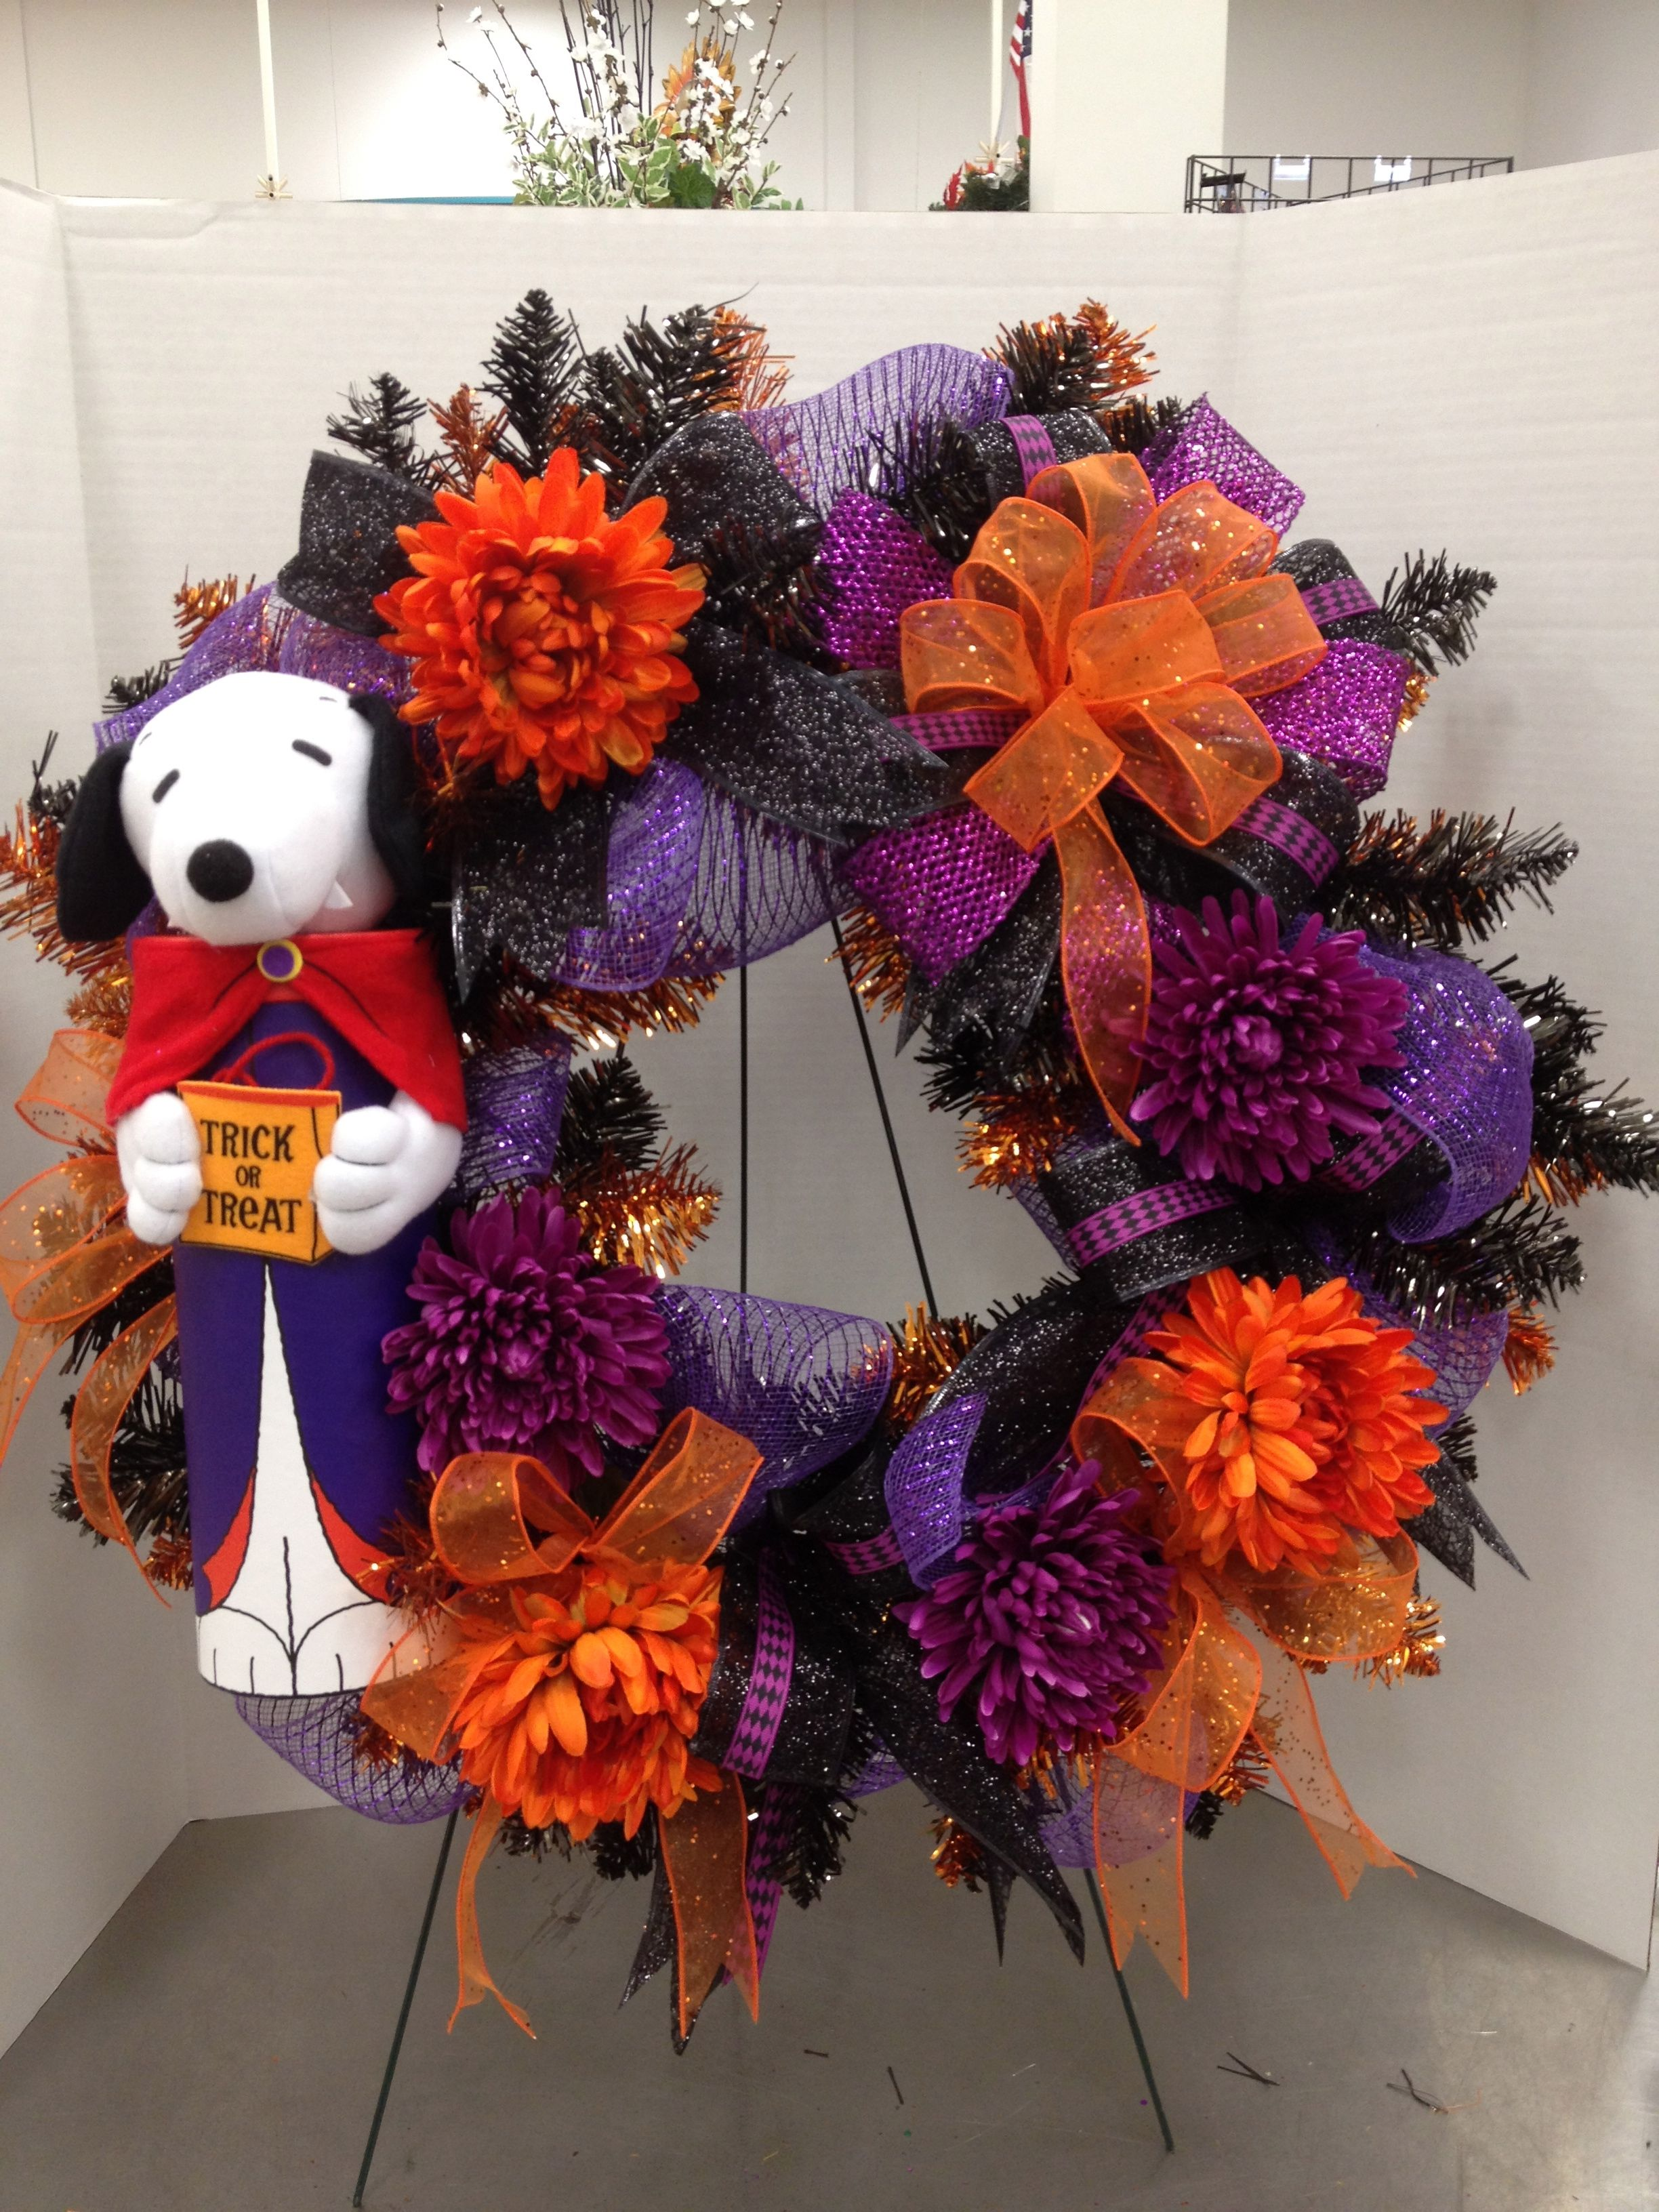 Peanuts Halloween Wreath 2012 By Christian Rebollo My Floral - michaels halloween decorations